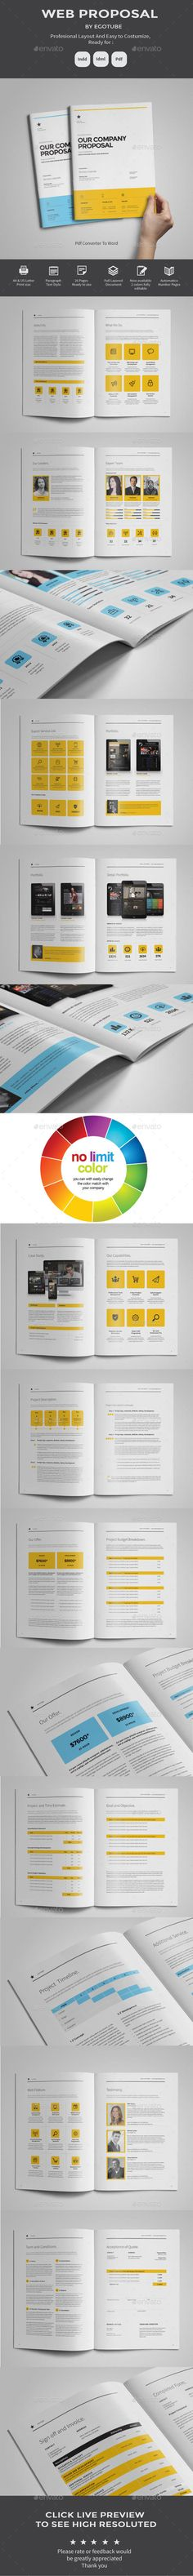 Indesign Business Proposal Template Template Pinterest - website proposal template